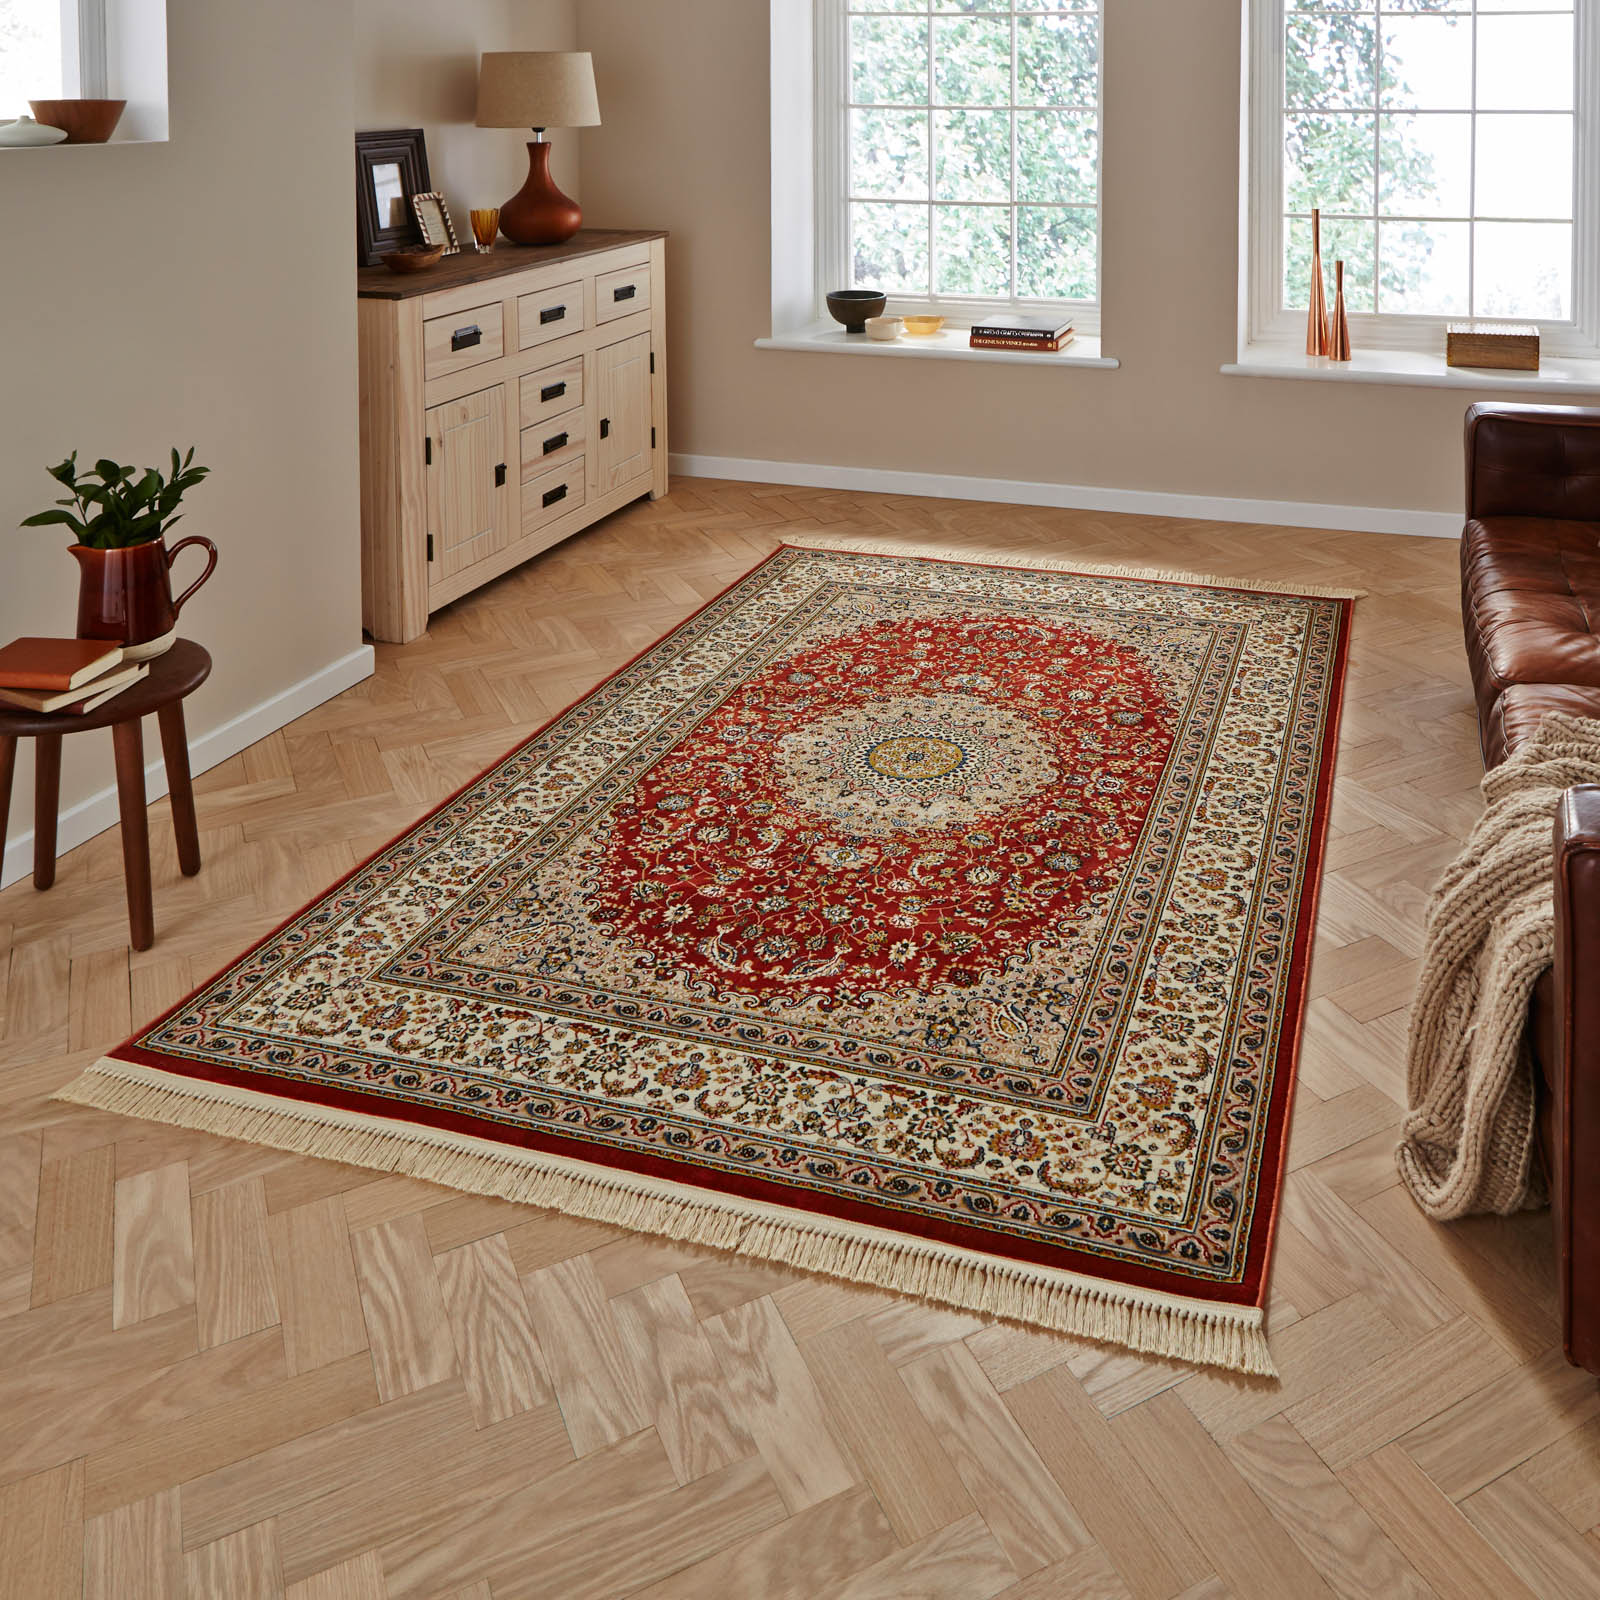 Heritage 0227A Rugs in Terracotta